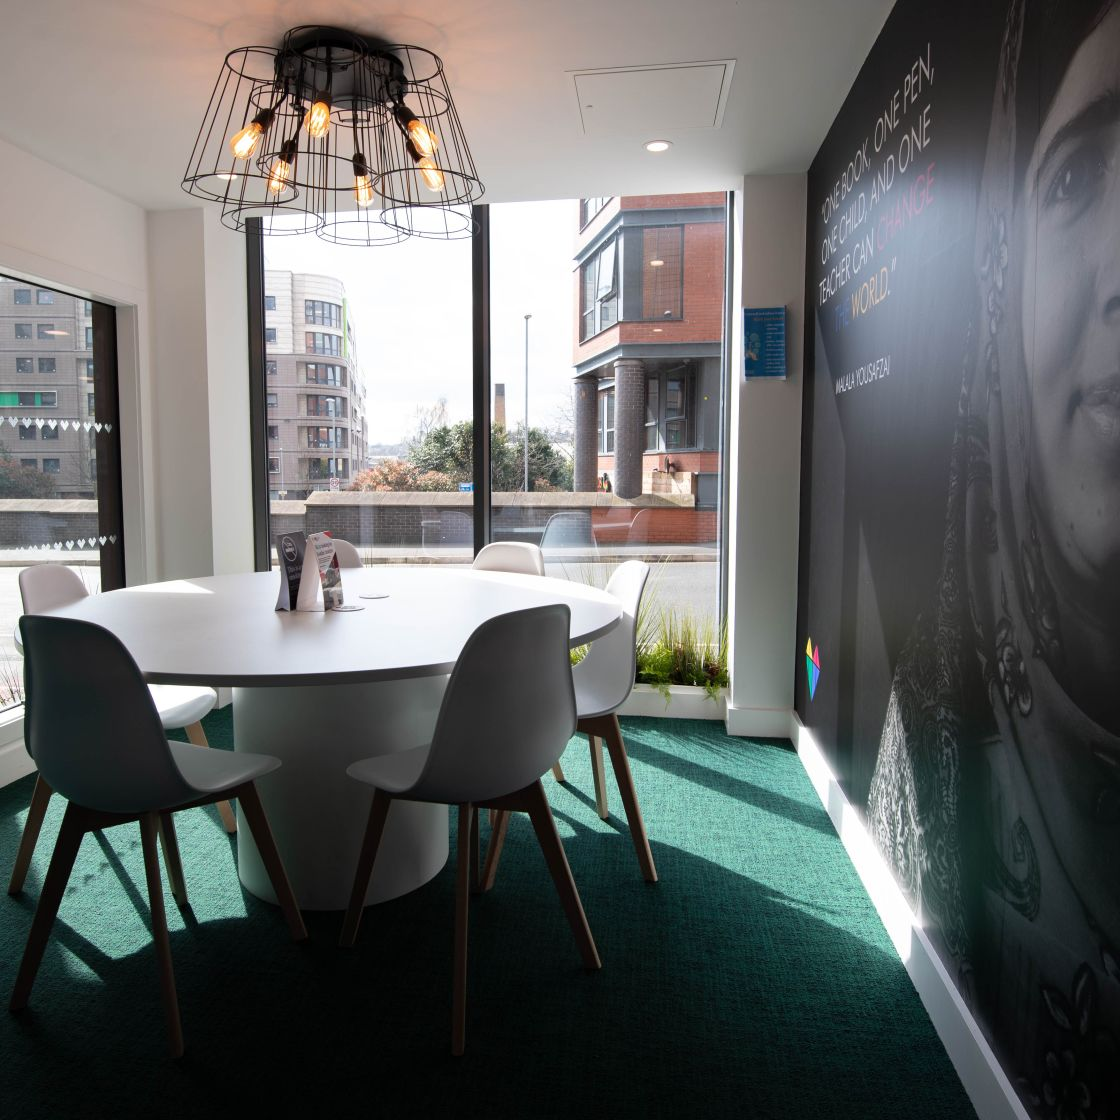 Private Study Room. IconInc, The Edge. Student Accommodation in Leeds